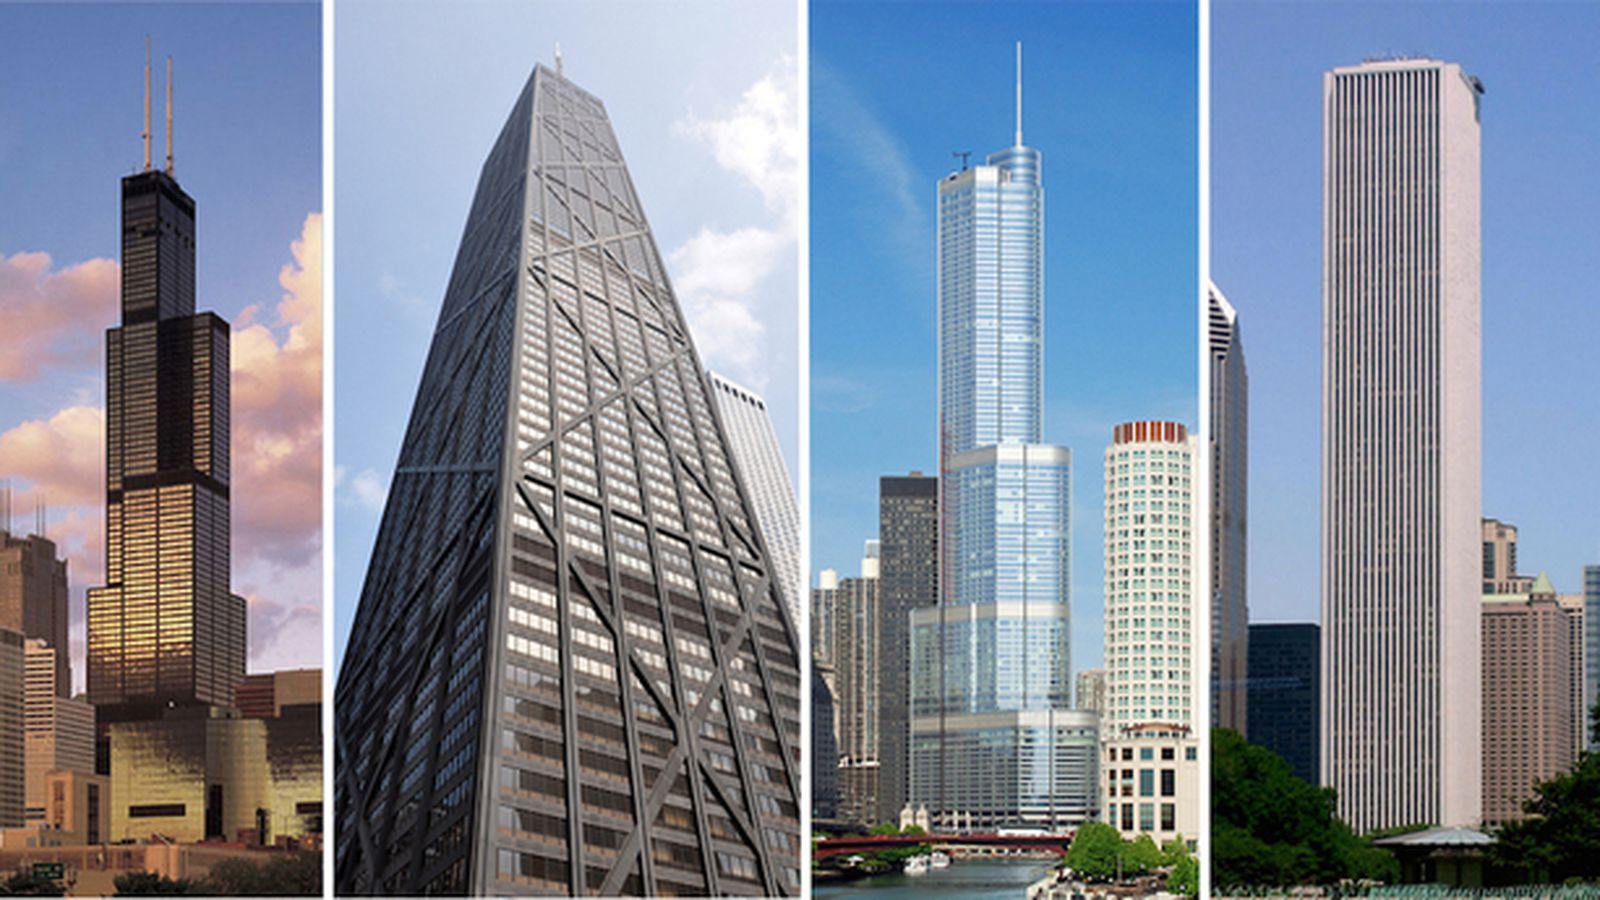 chicago buildings downtown iconic sullivan louis building architecture towers curbed skyscrapers famous know chicagoan must every статьи источник